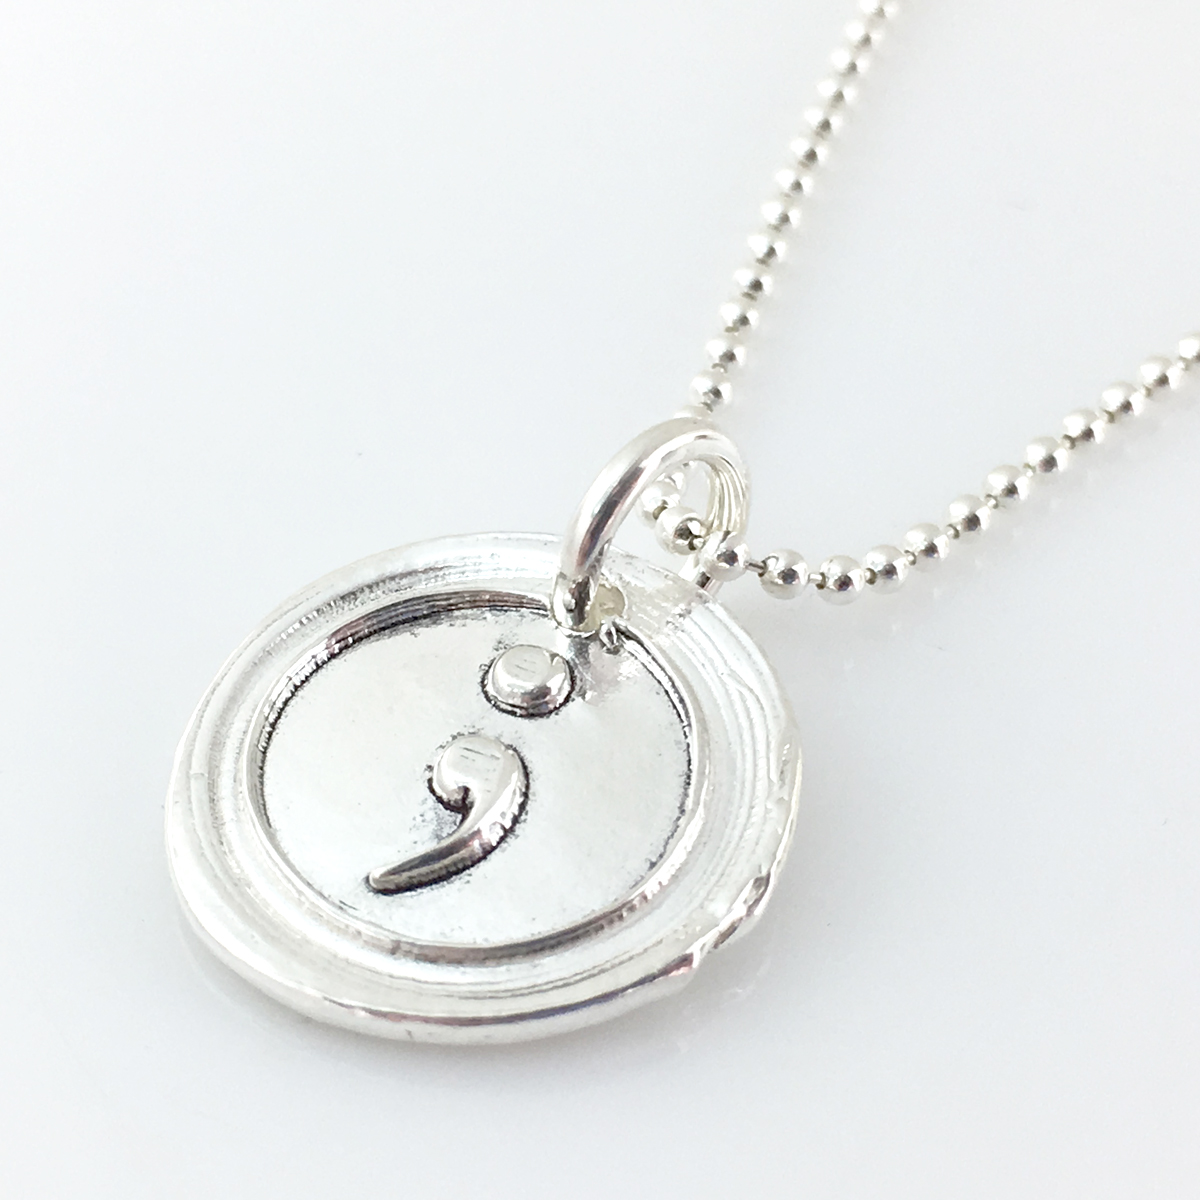 Semicolon Wax Seal Inspired Necklace